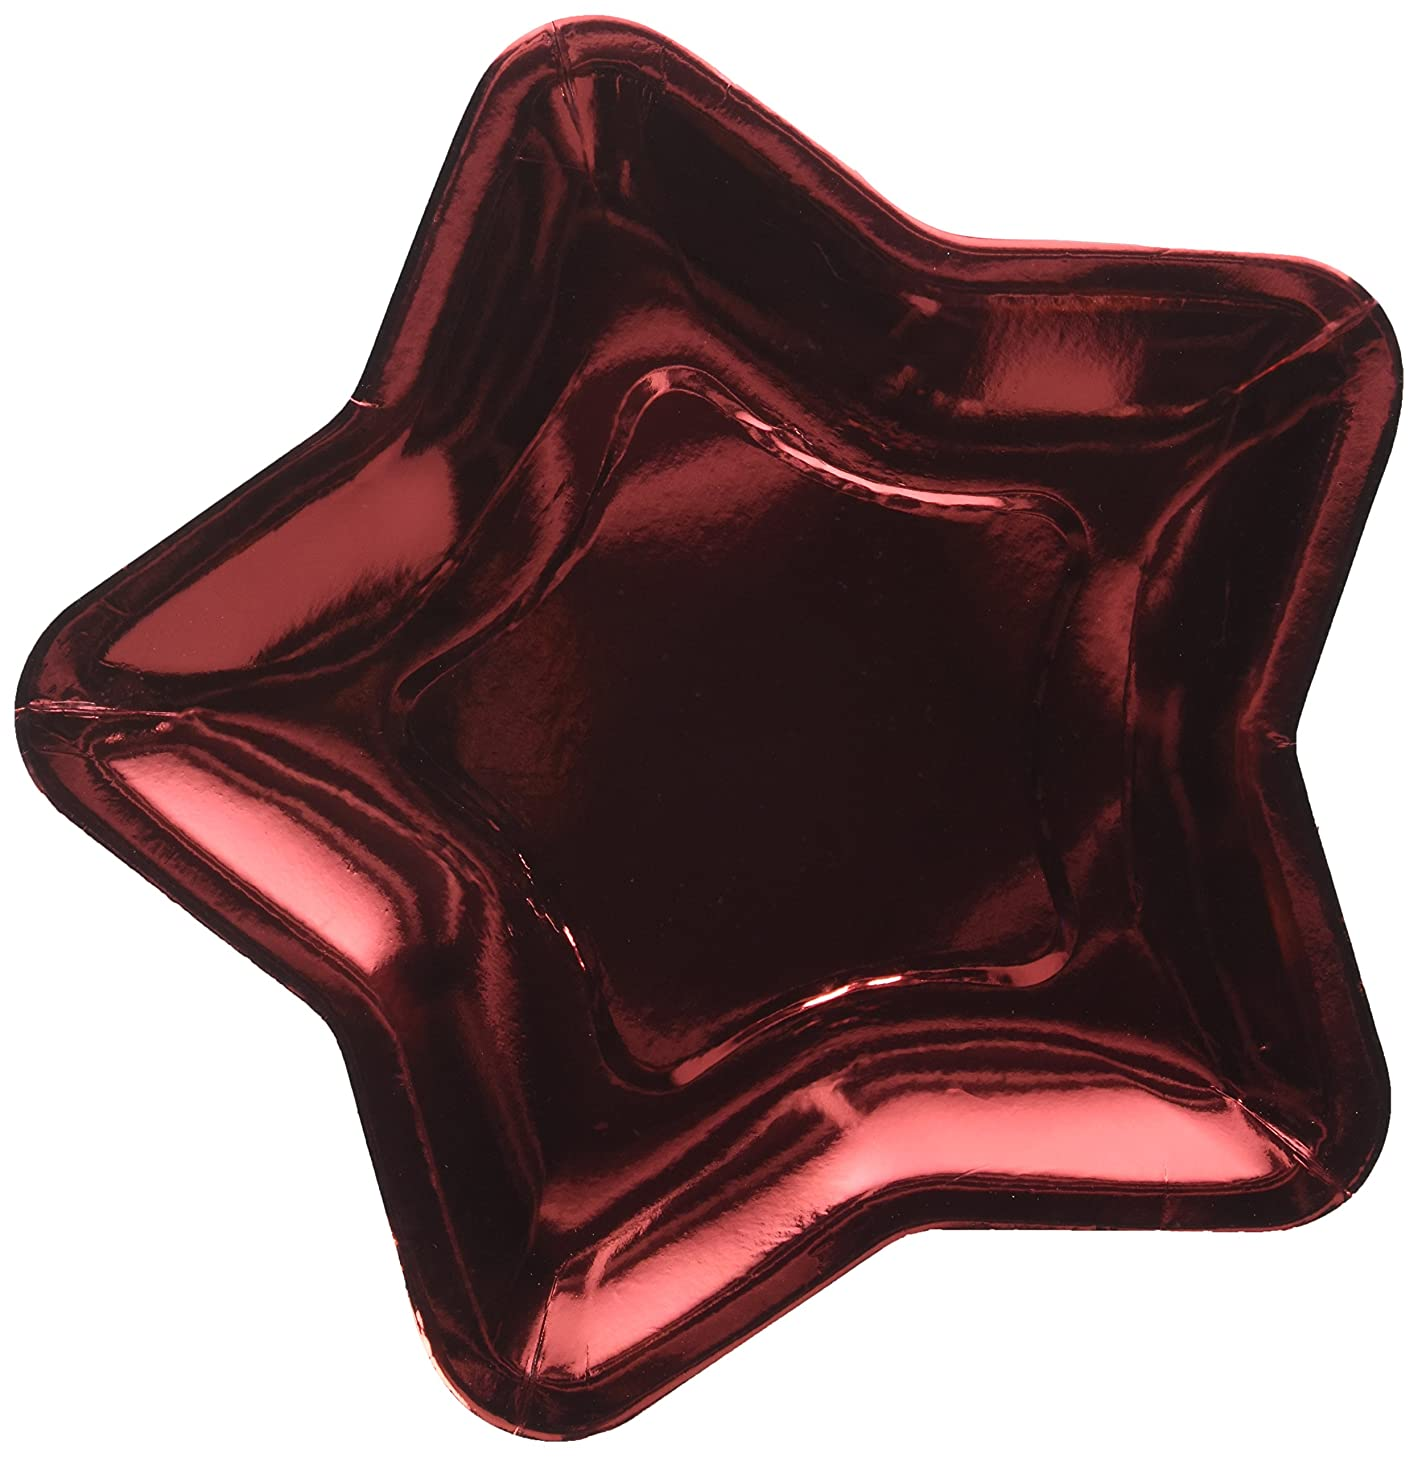 Star Shaped 9.6 Inch Foil Paper Party Plates, Set of 24 (Red)